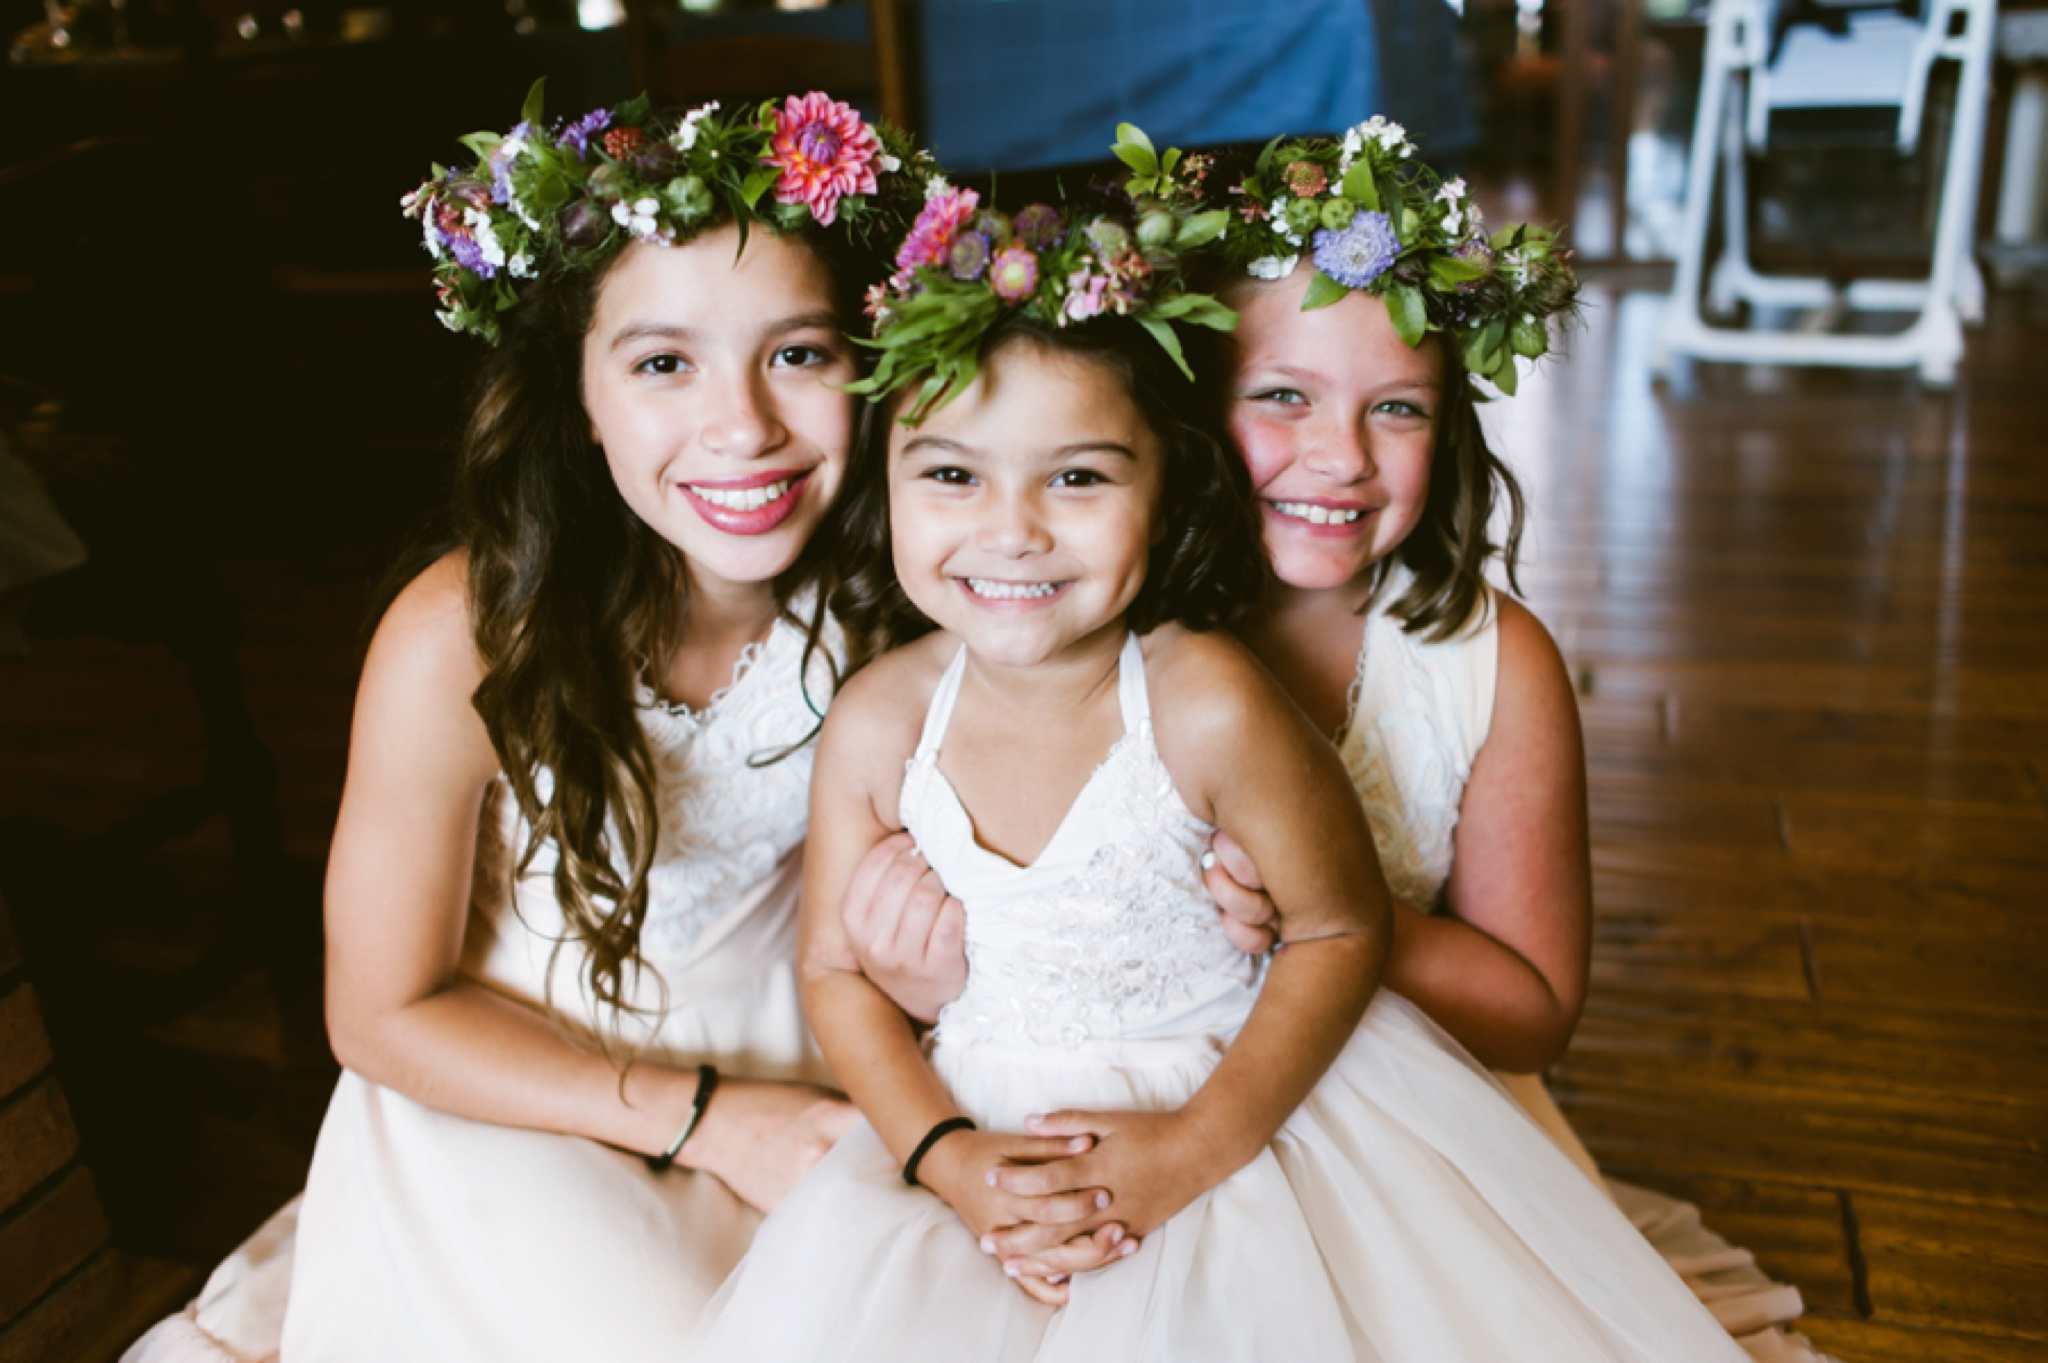 Junior bridesmaids wearing flower crowns